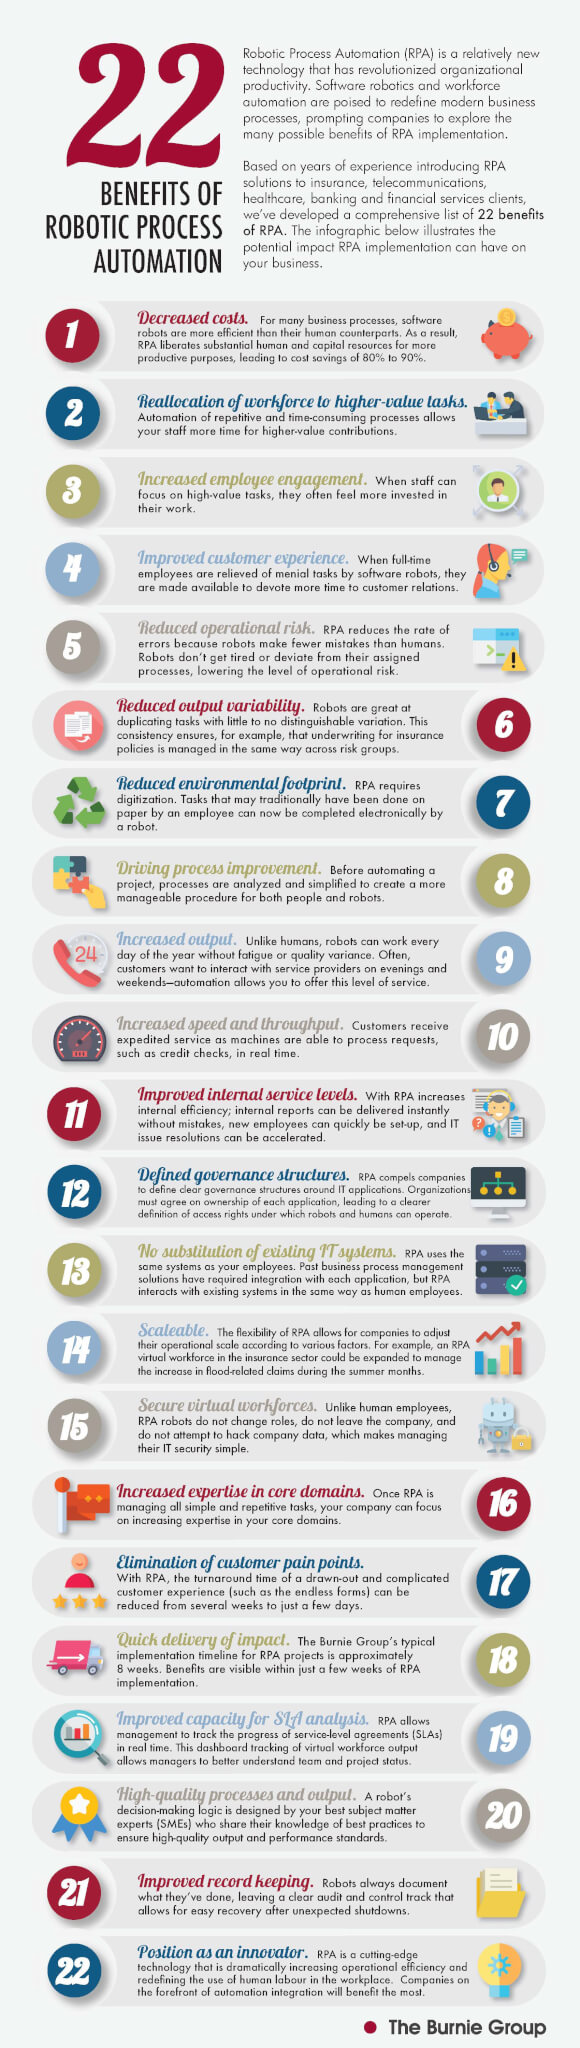 INFOGRAPHIC: 22 Benefits of RPA